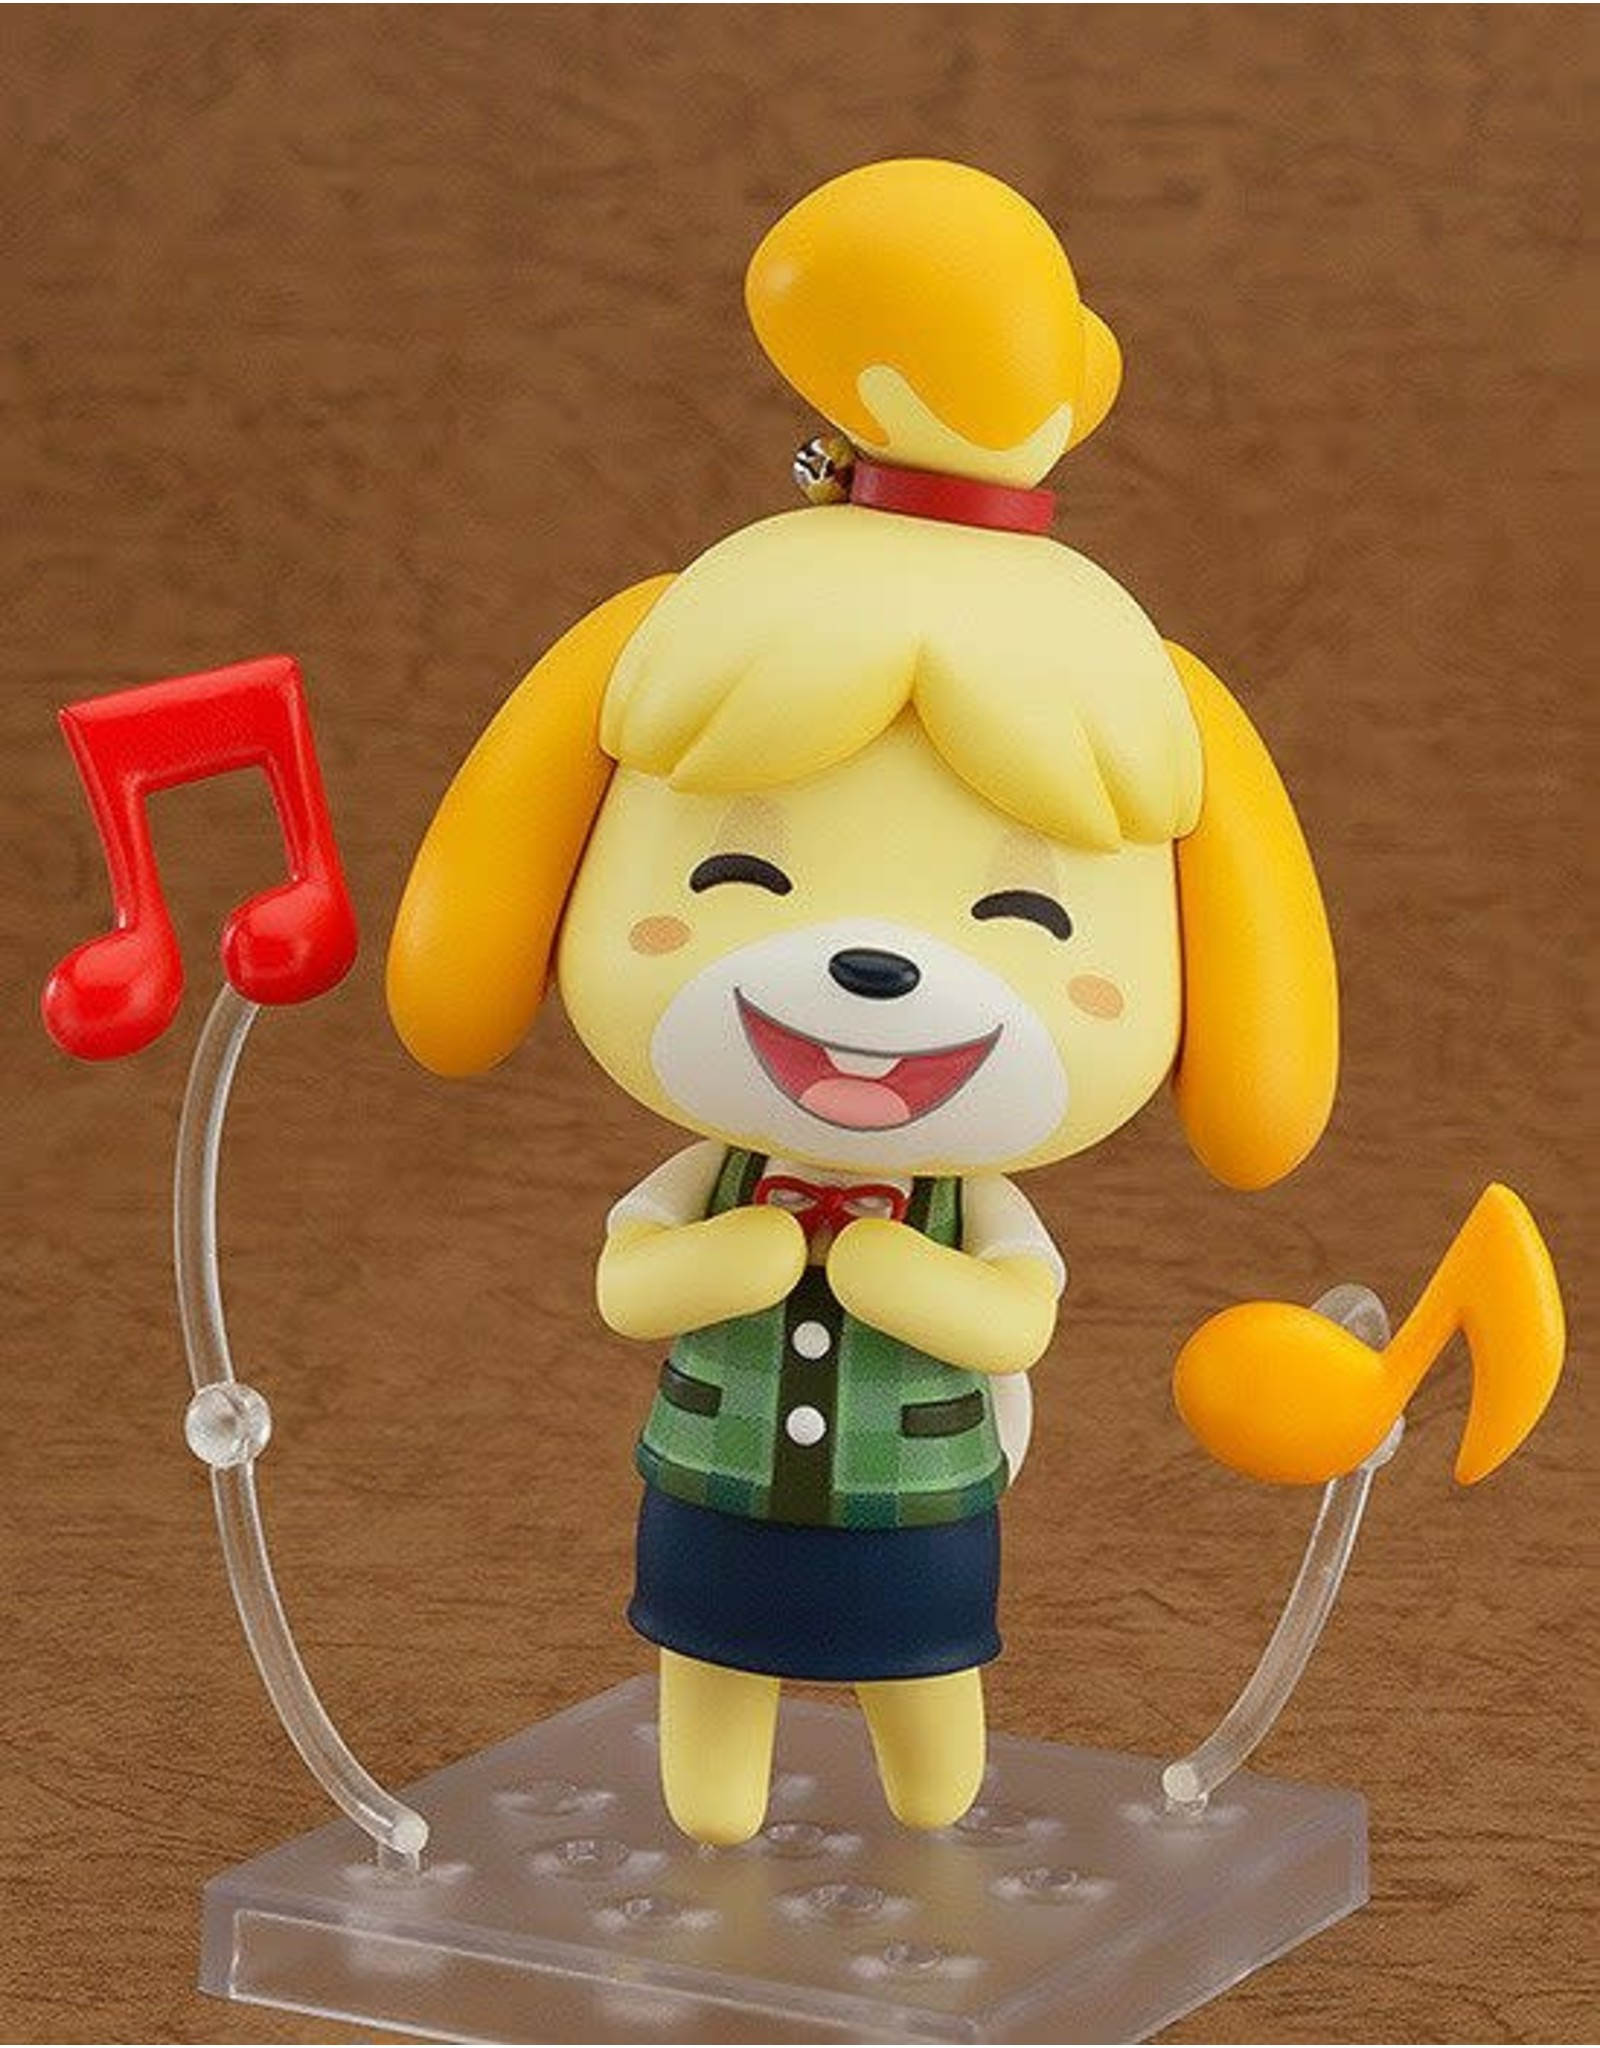 Animal Crossing New Leaf - Isabelle - Nendoroid Action Figure - 10 cm